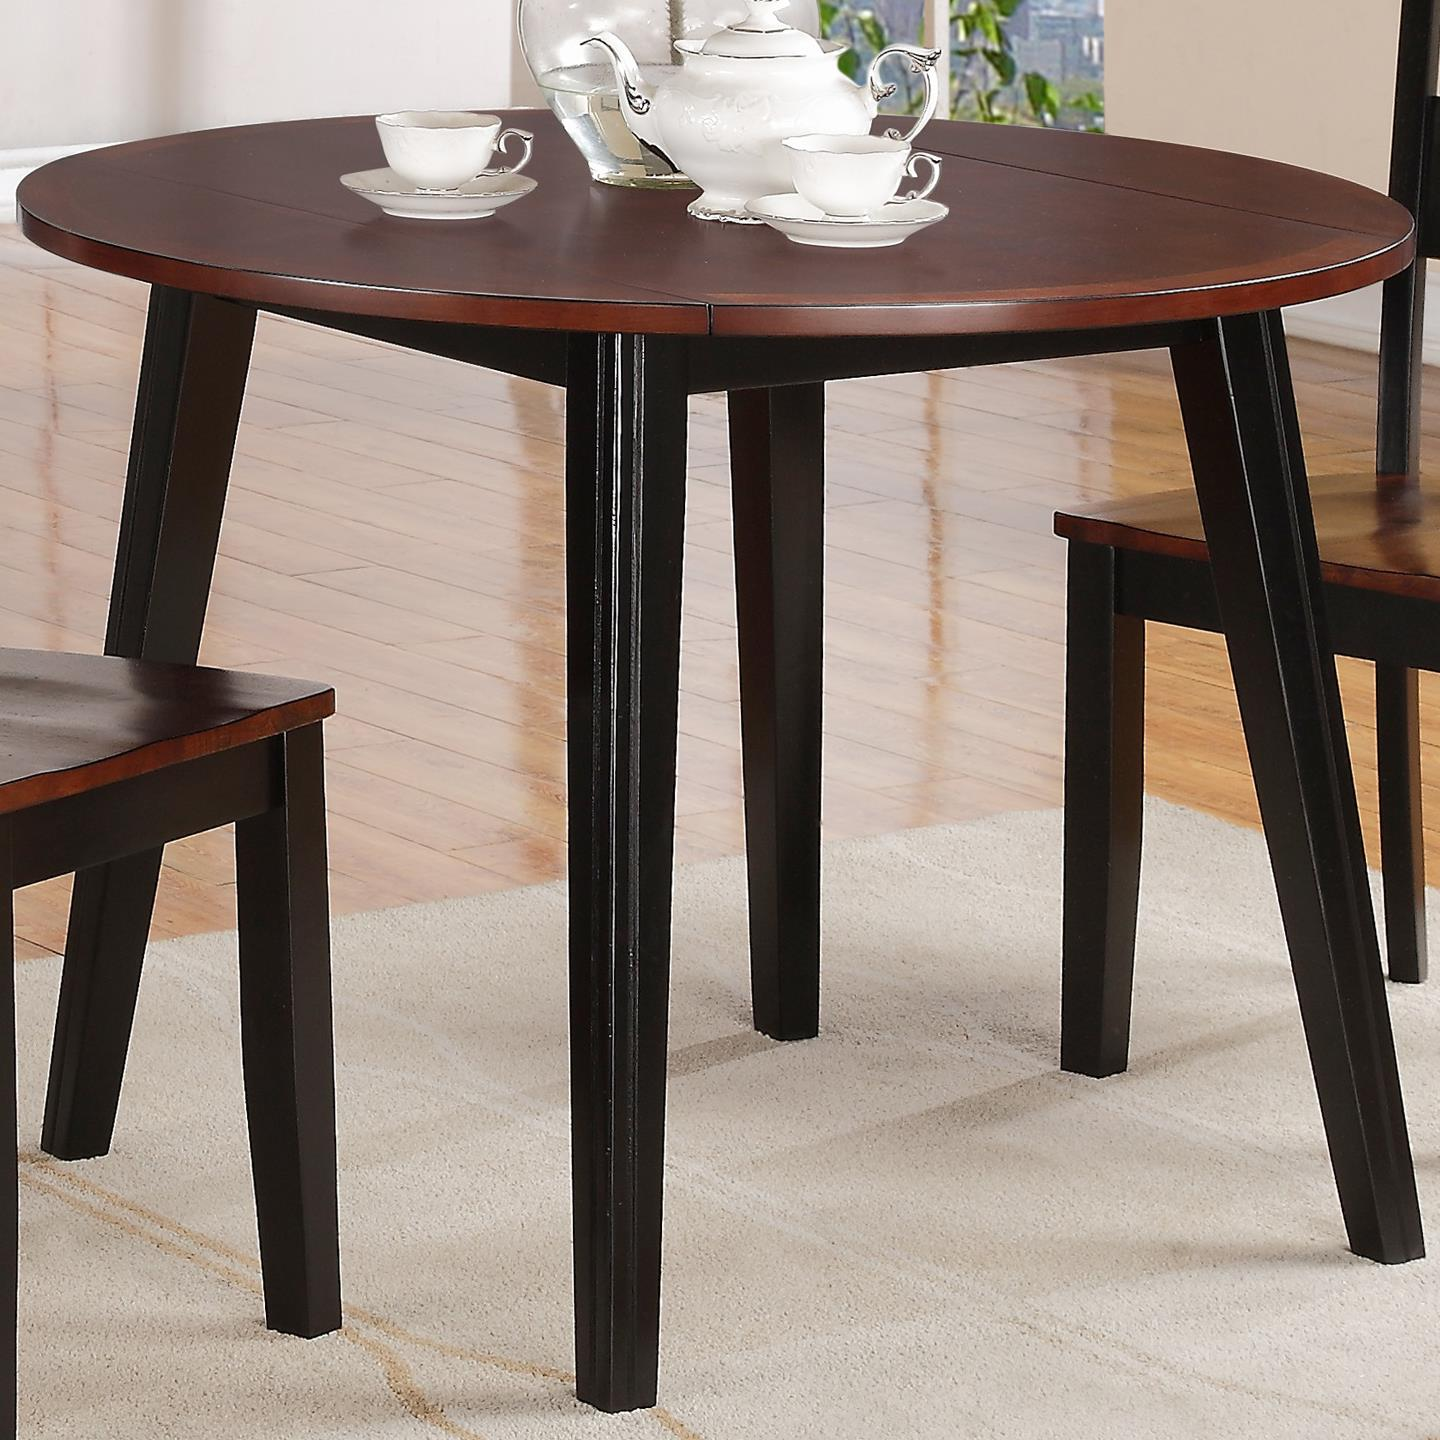 Holland House 8202 Round Drop Leaf Table - Item Number: 8202-4242